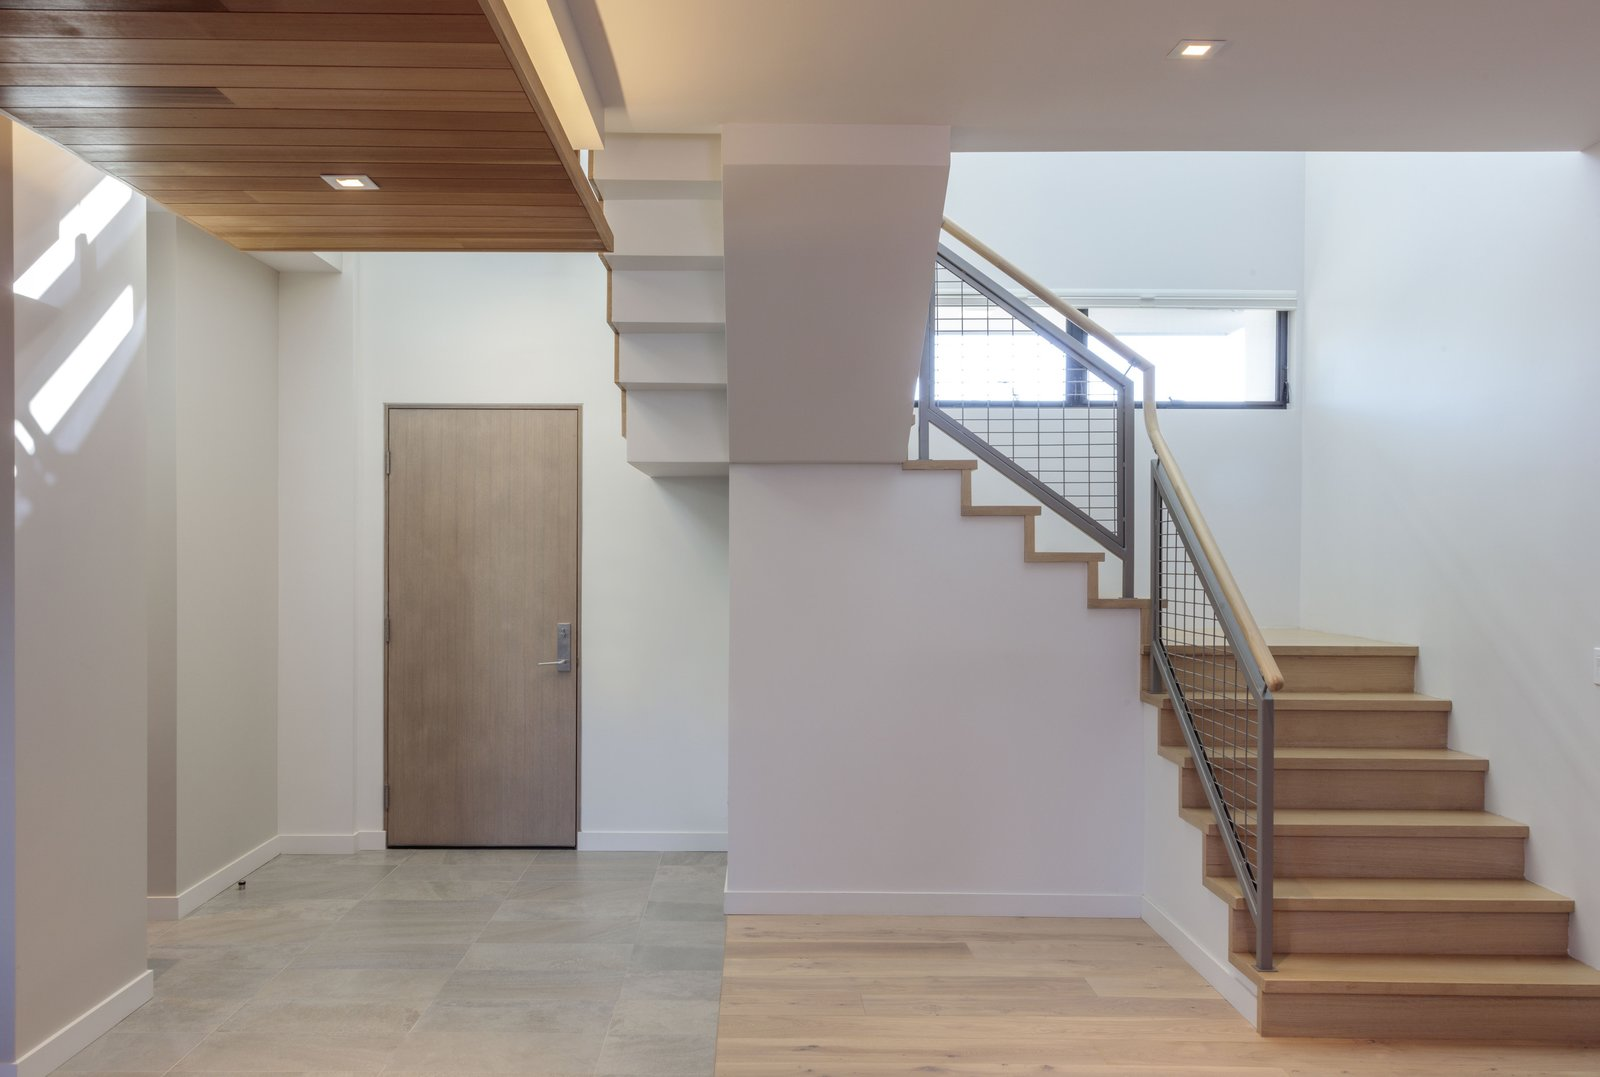 Staircase, Wood Tread, Metal Railing, and Wood Railing entry and stair  Legal House